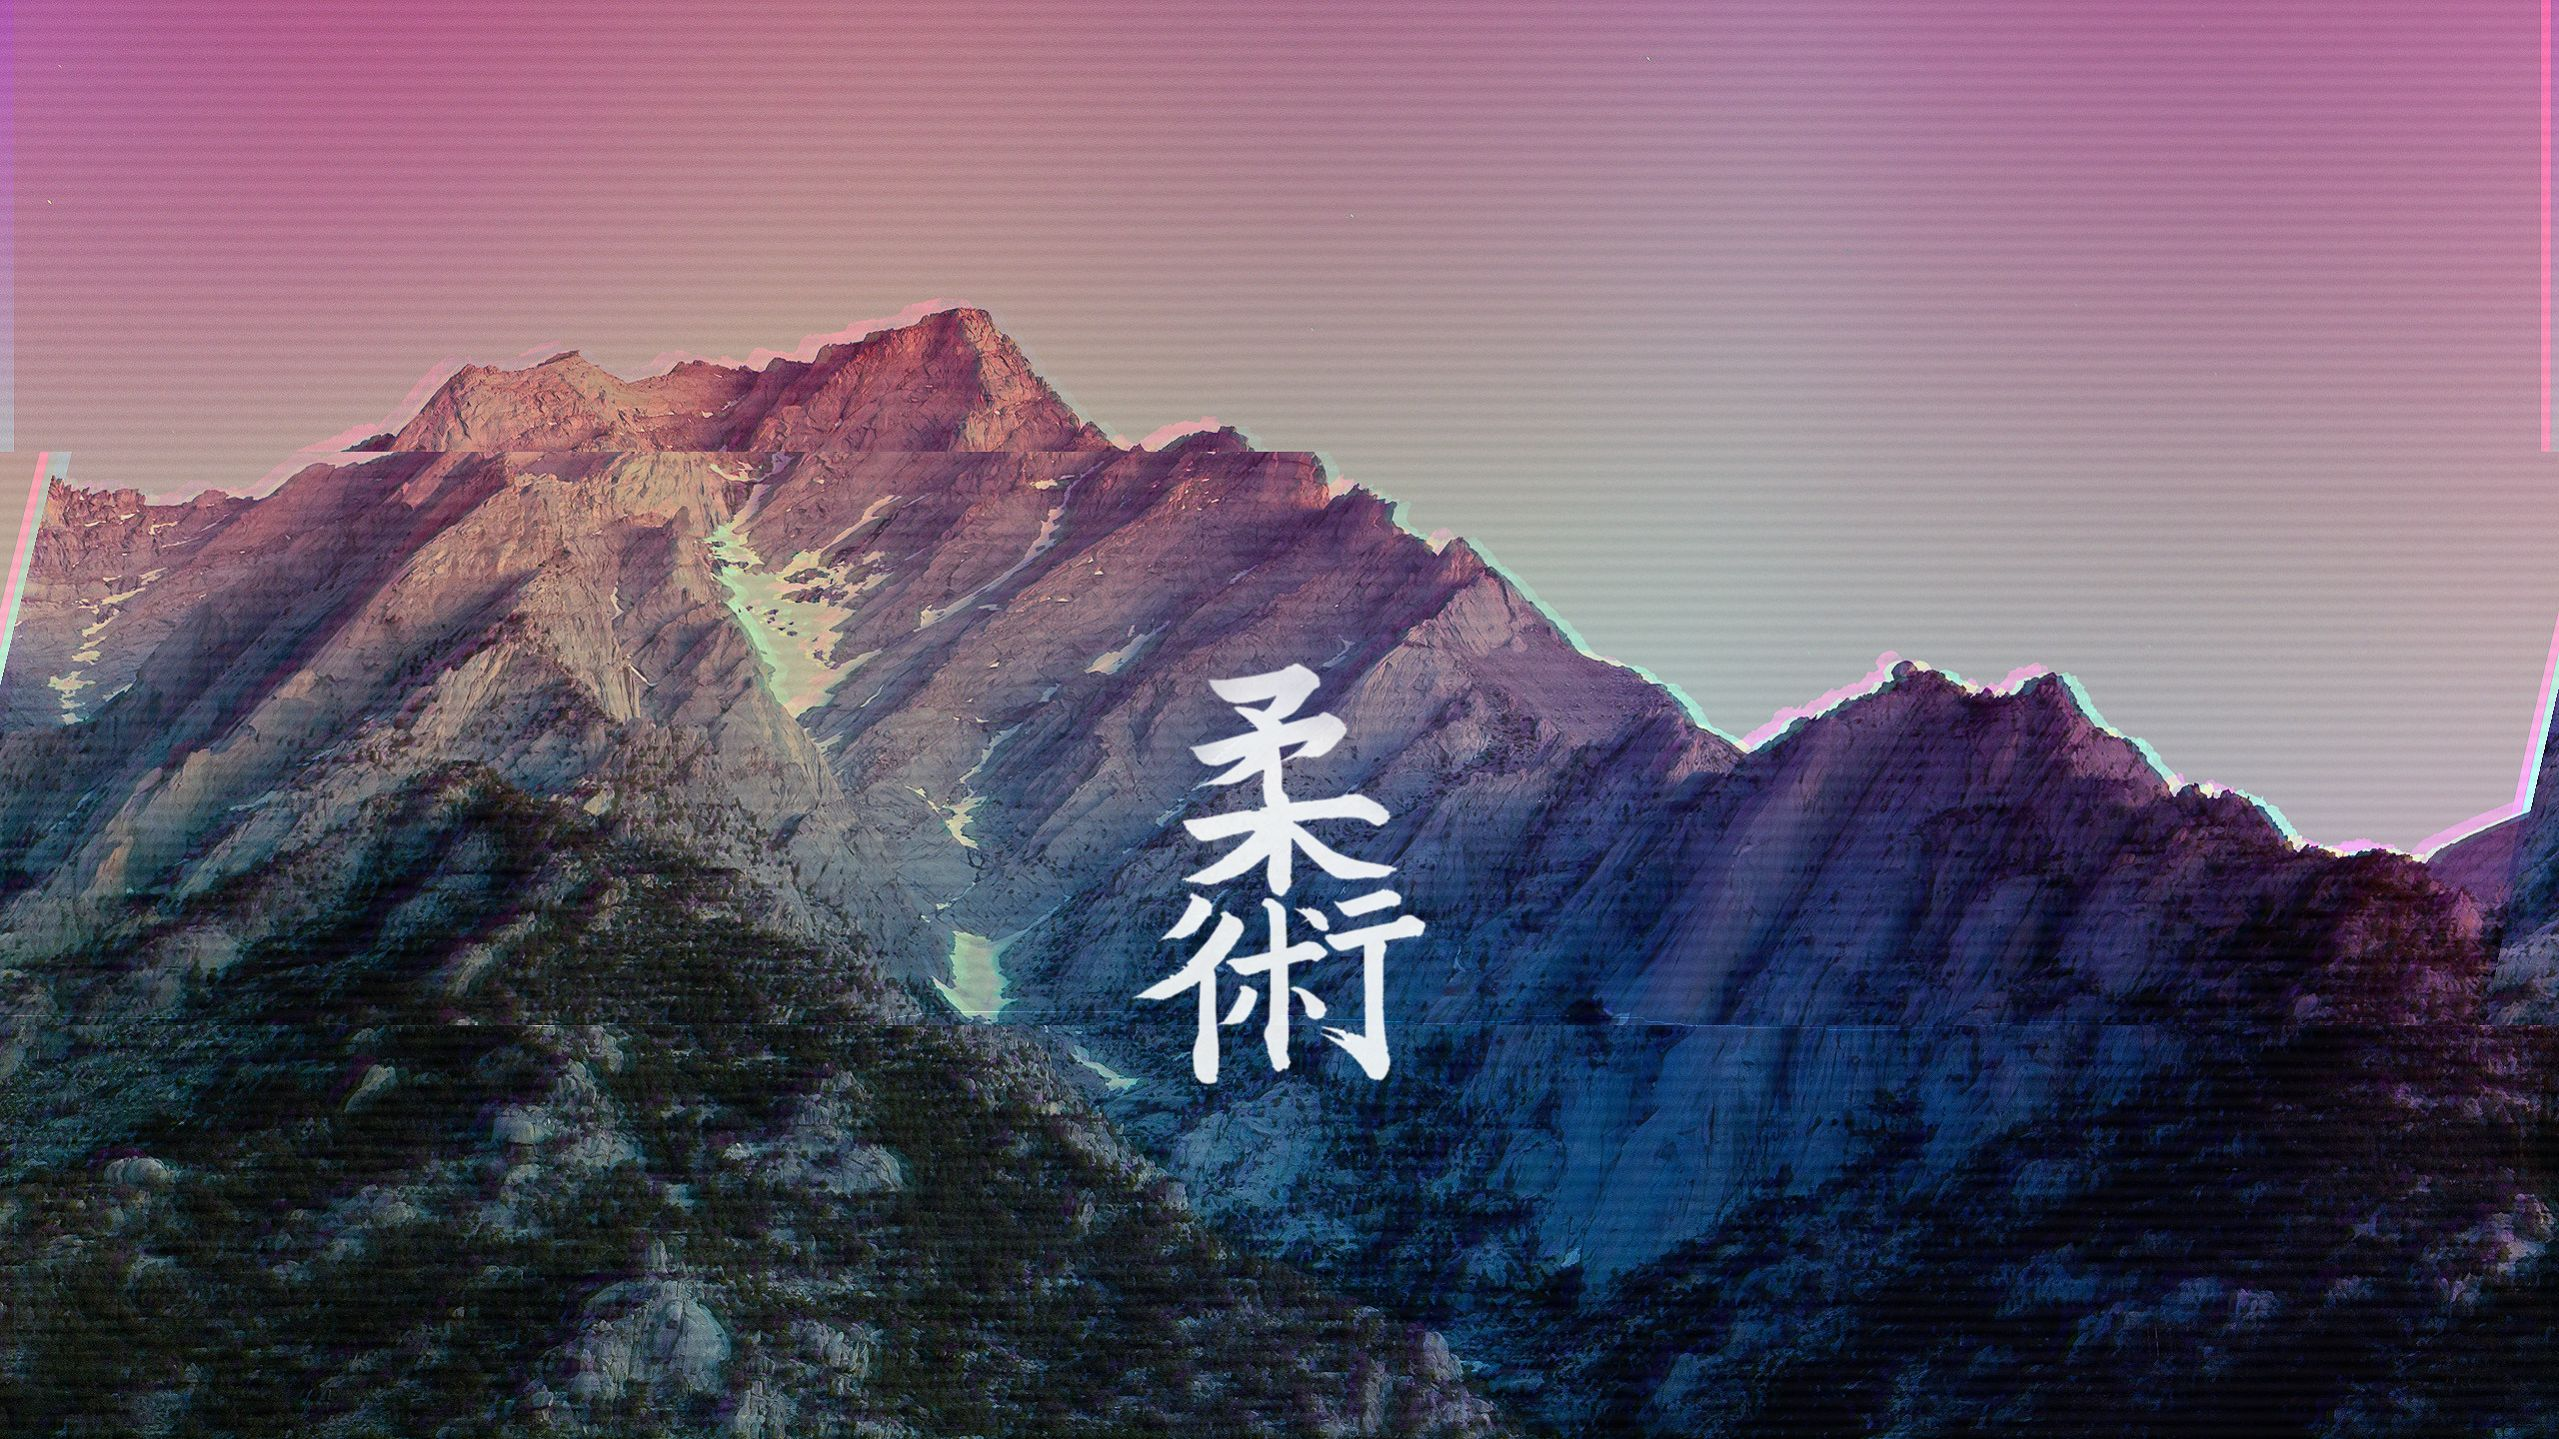 Top Wallpaper Mountain Aesthetic - b4f2f1a648b8f94ad272c45ad463ab37  Pictures_432468.jpg